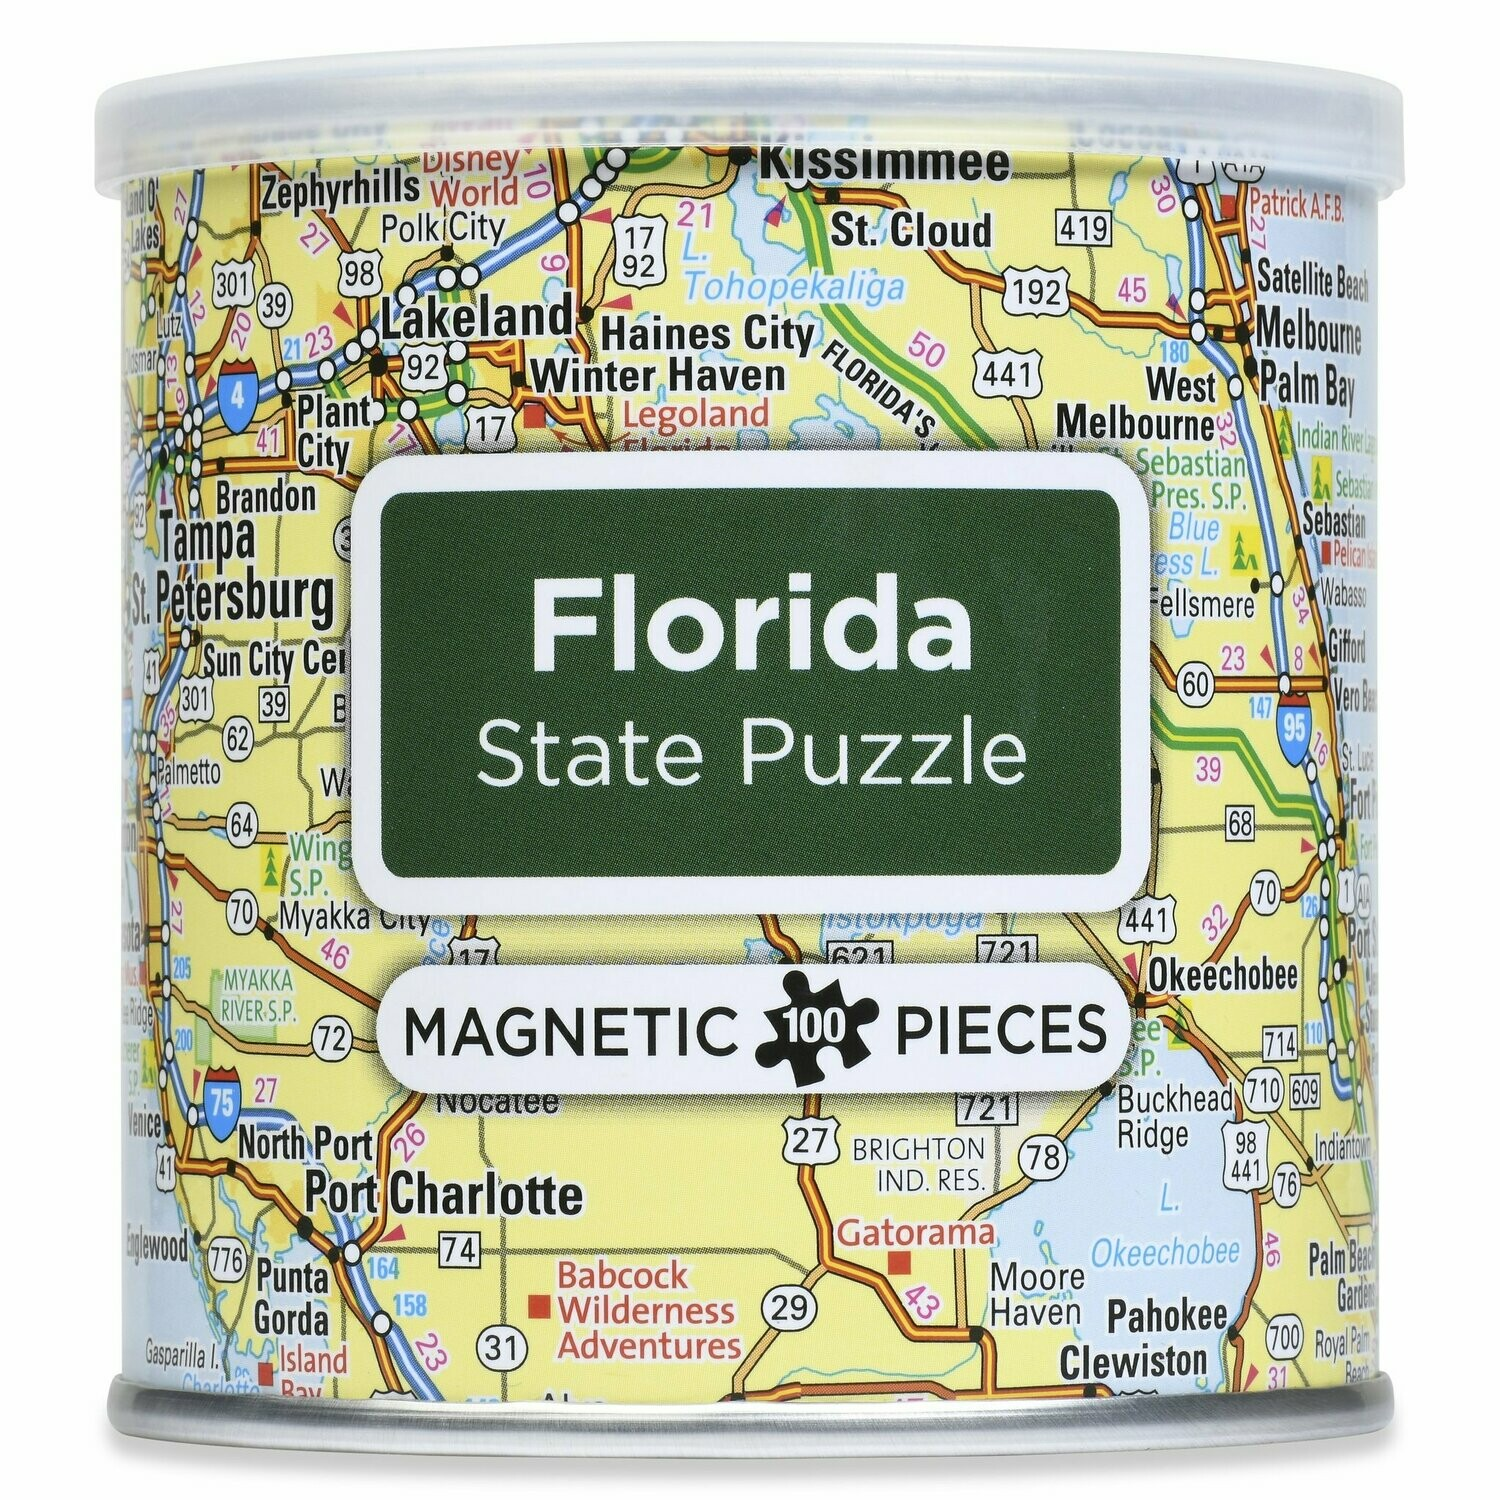 100 Piece Magnetic Puzzle - Florida